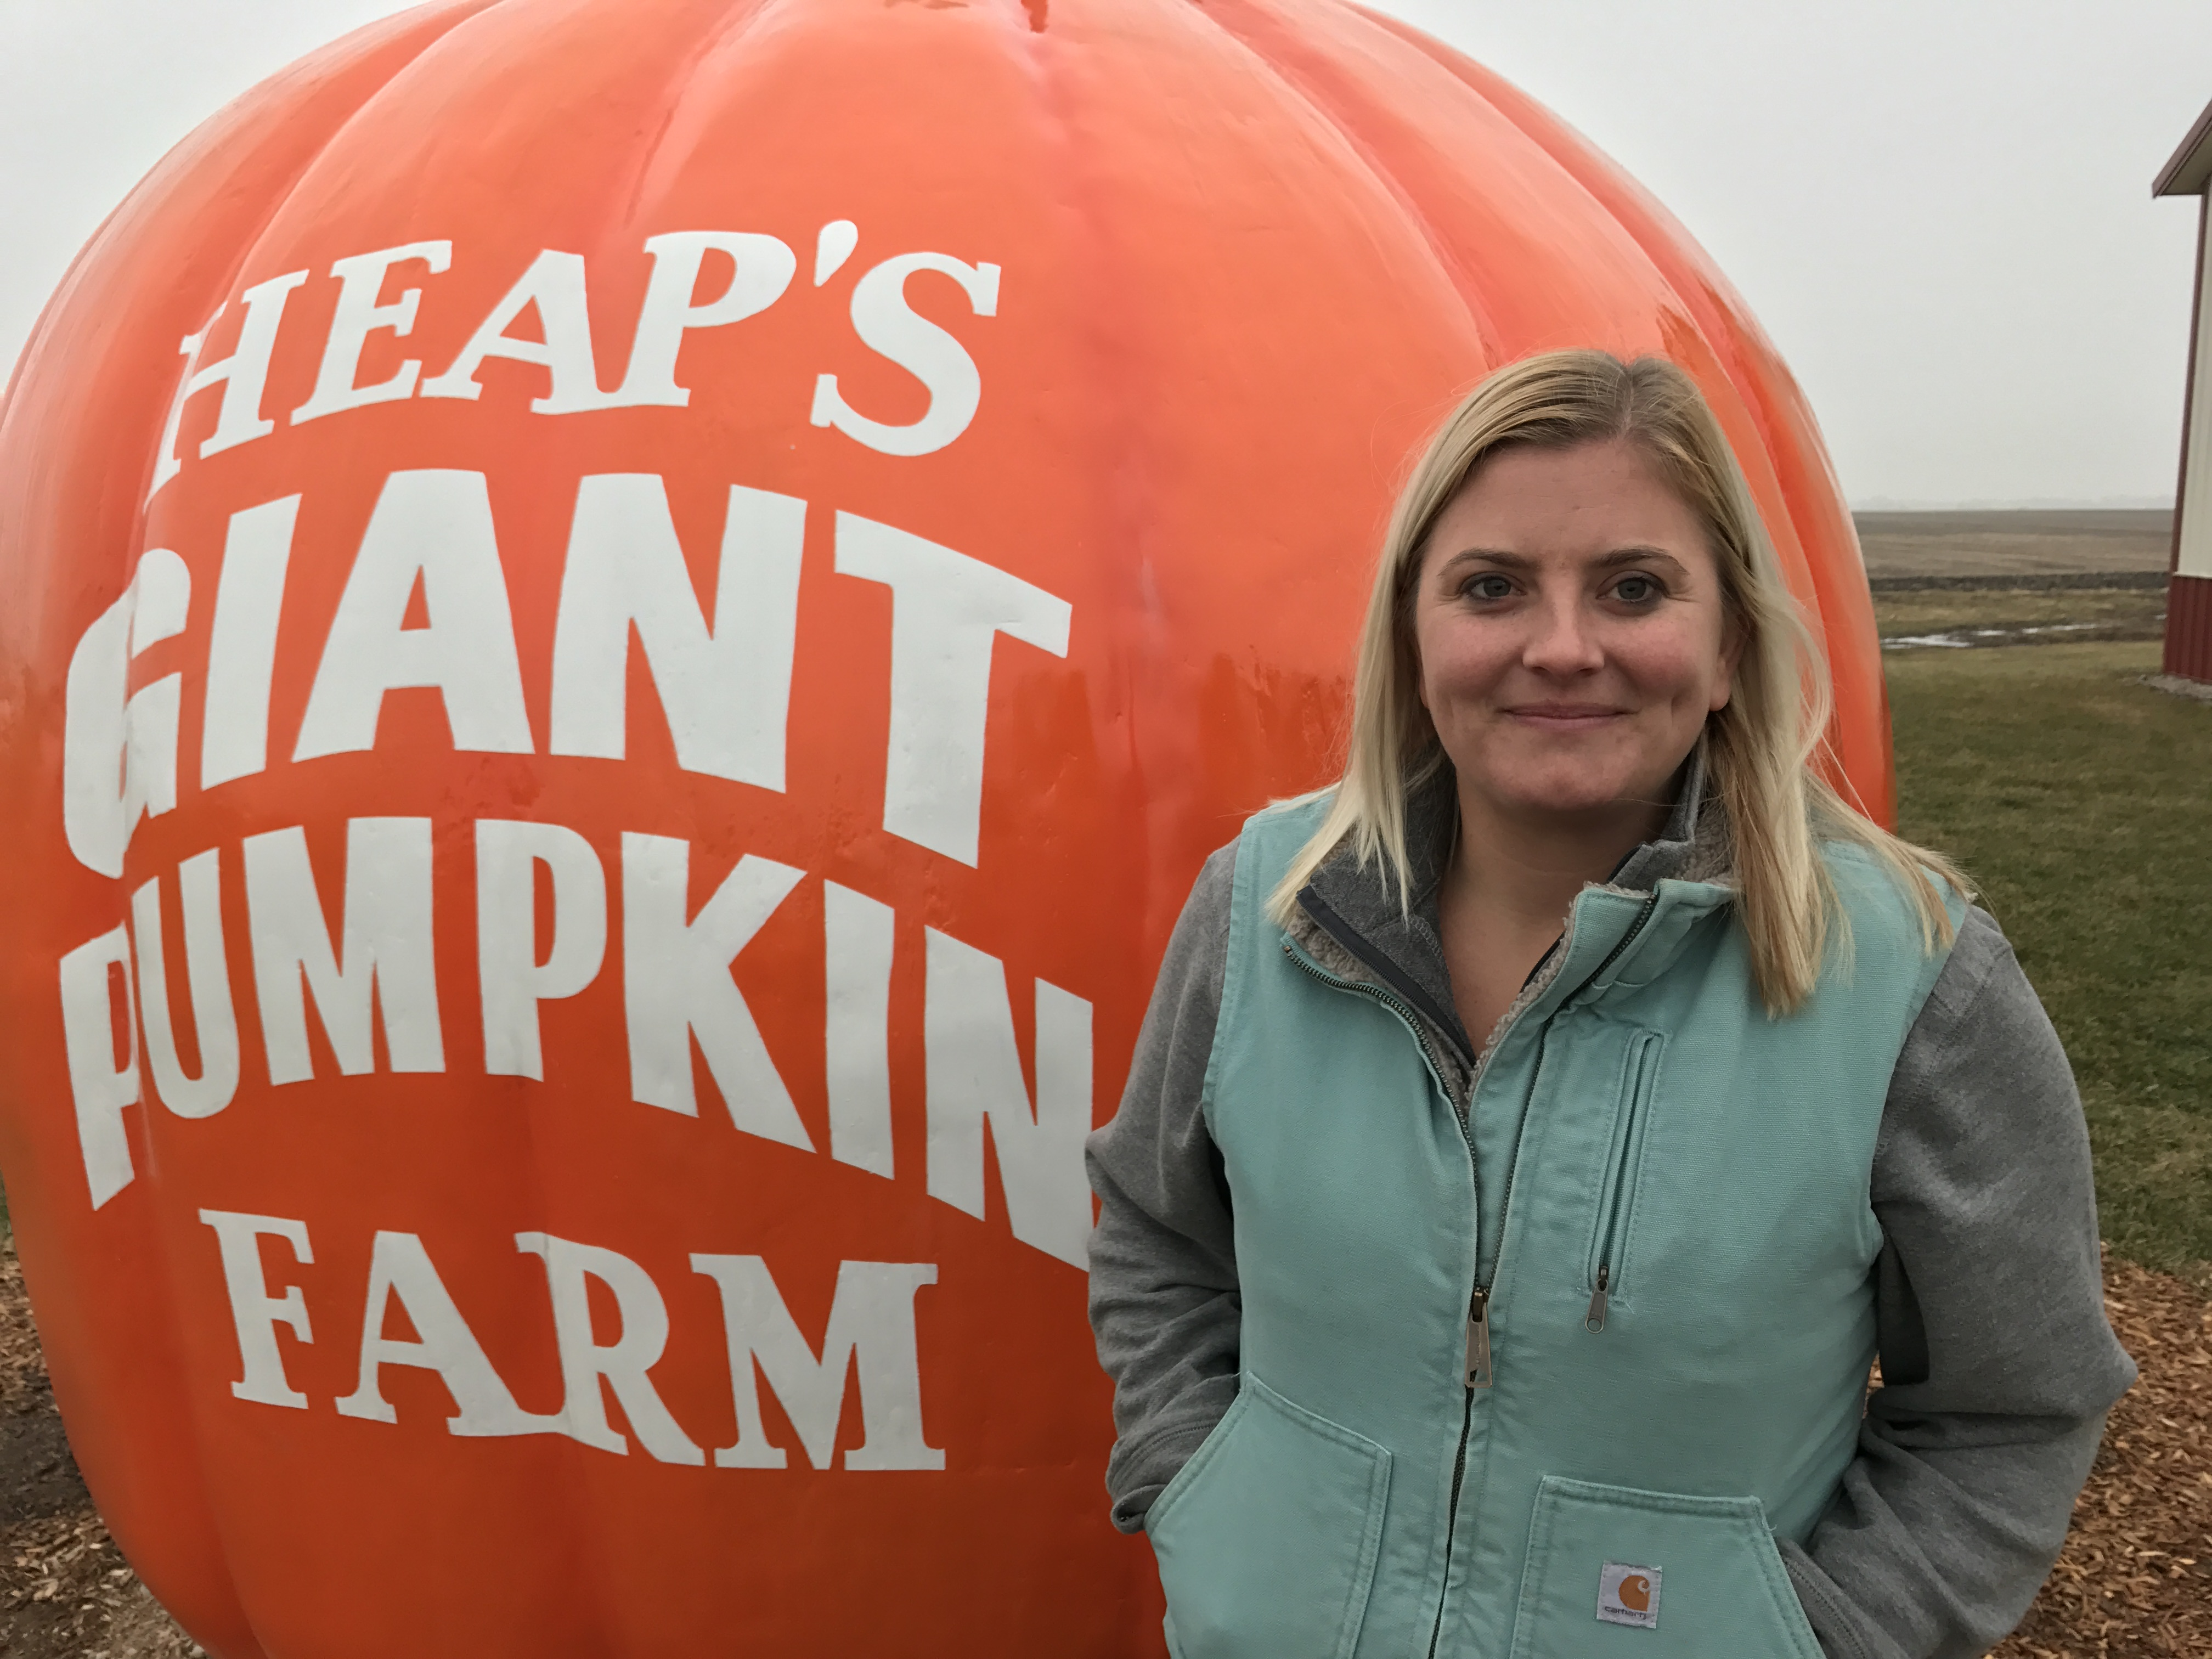 IFB Young Leader chairwoman hopes to keep momentum going on, off farm